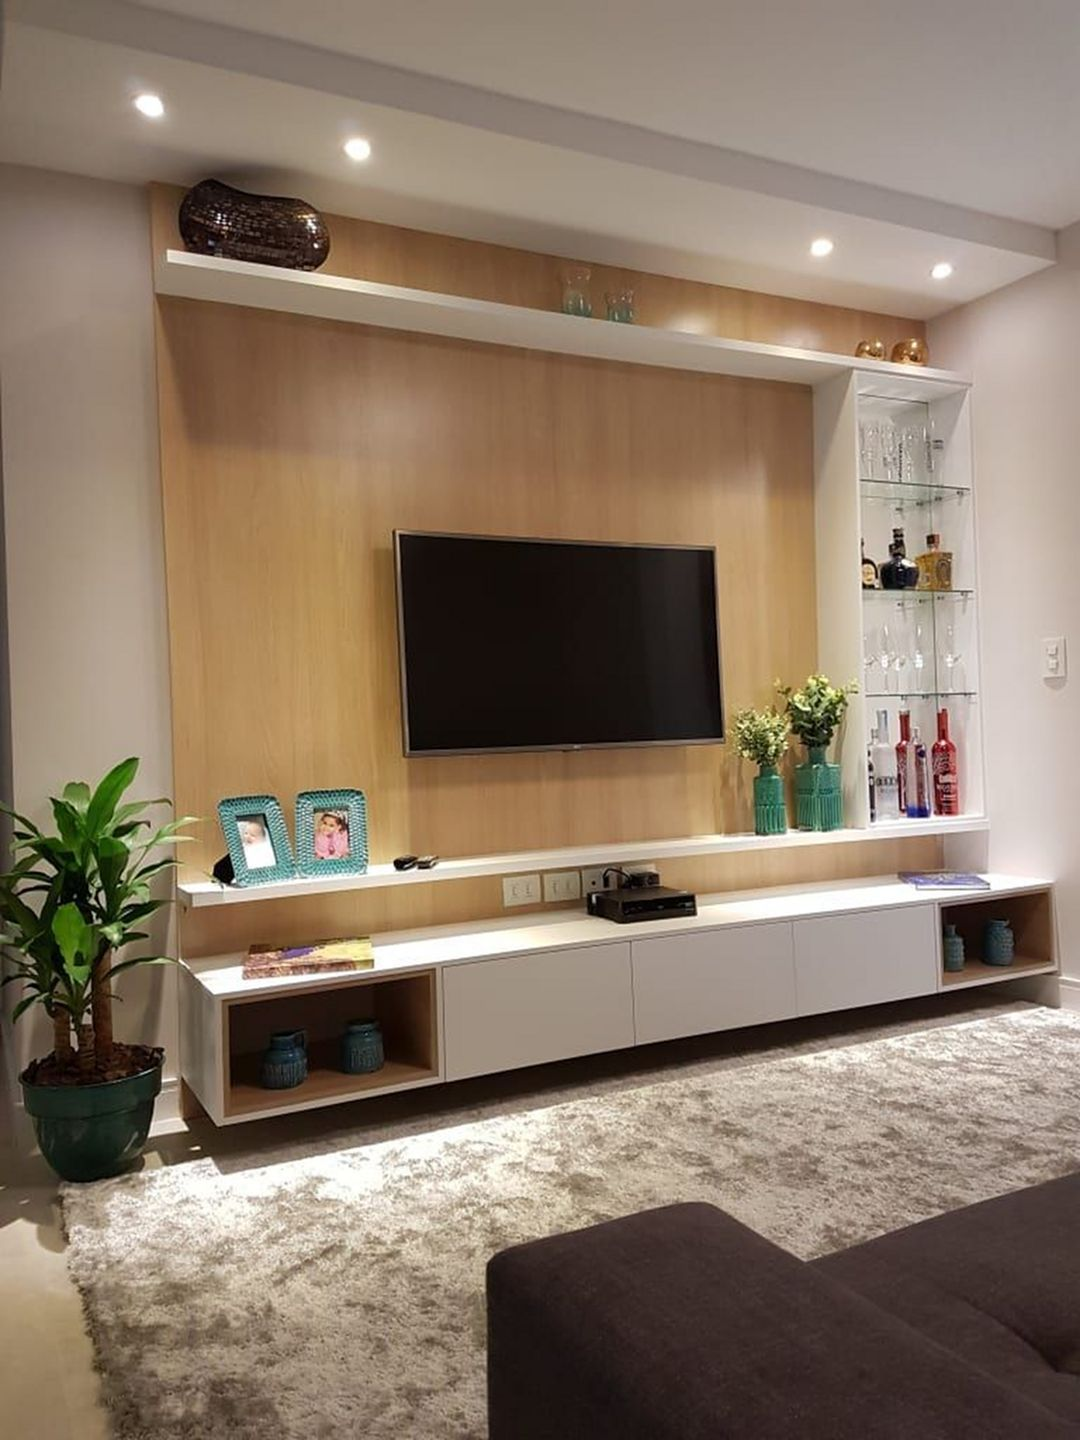 Pin By Kam Wai Lok On Allt Tv Room Design Wall Tv Unit Design Living Room Tv Wall